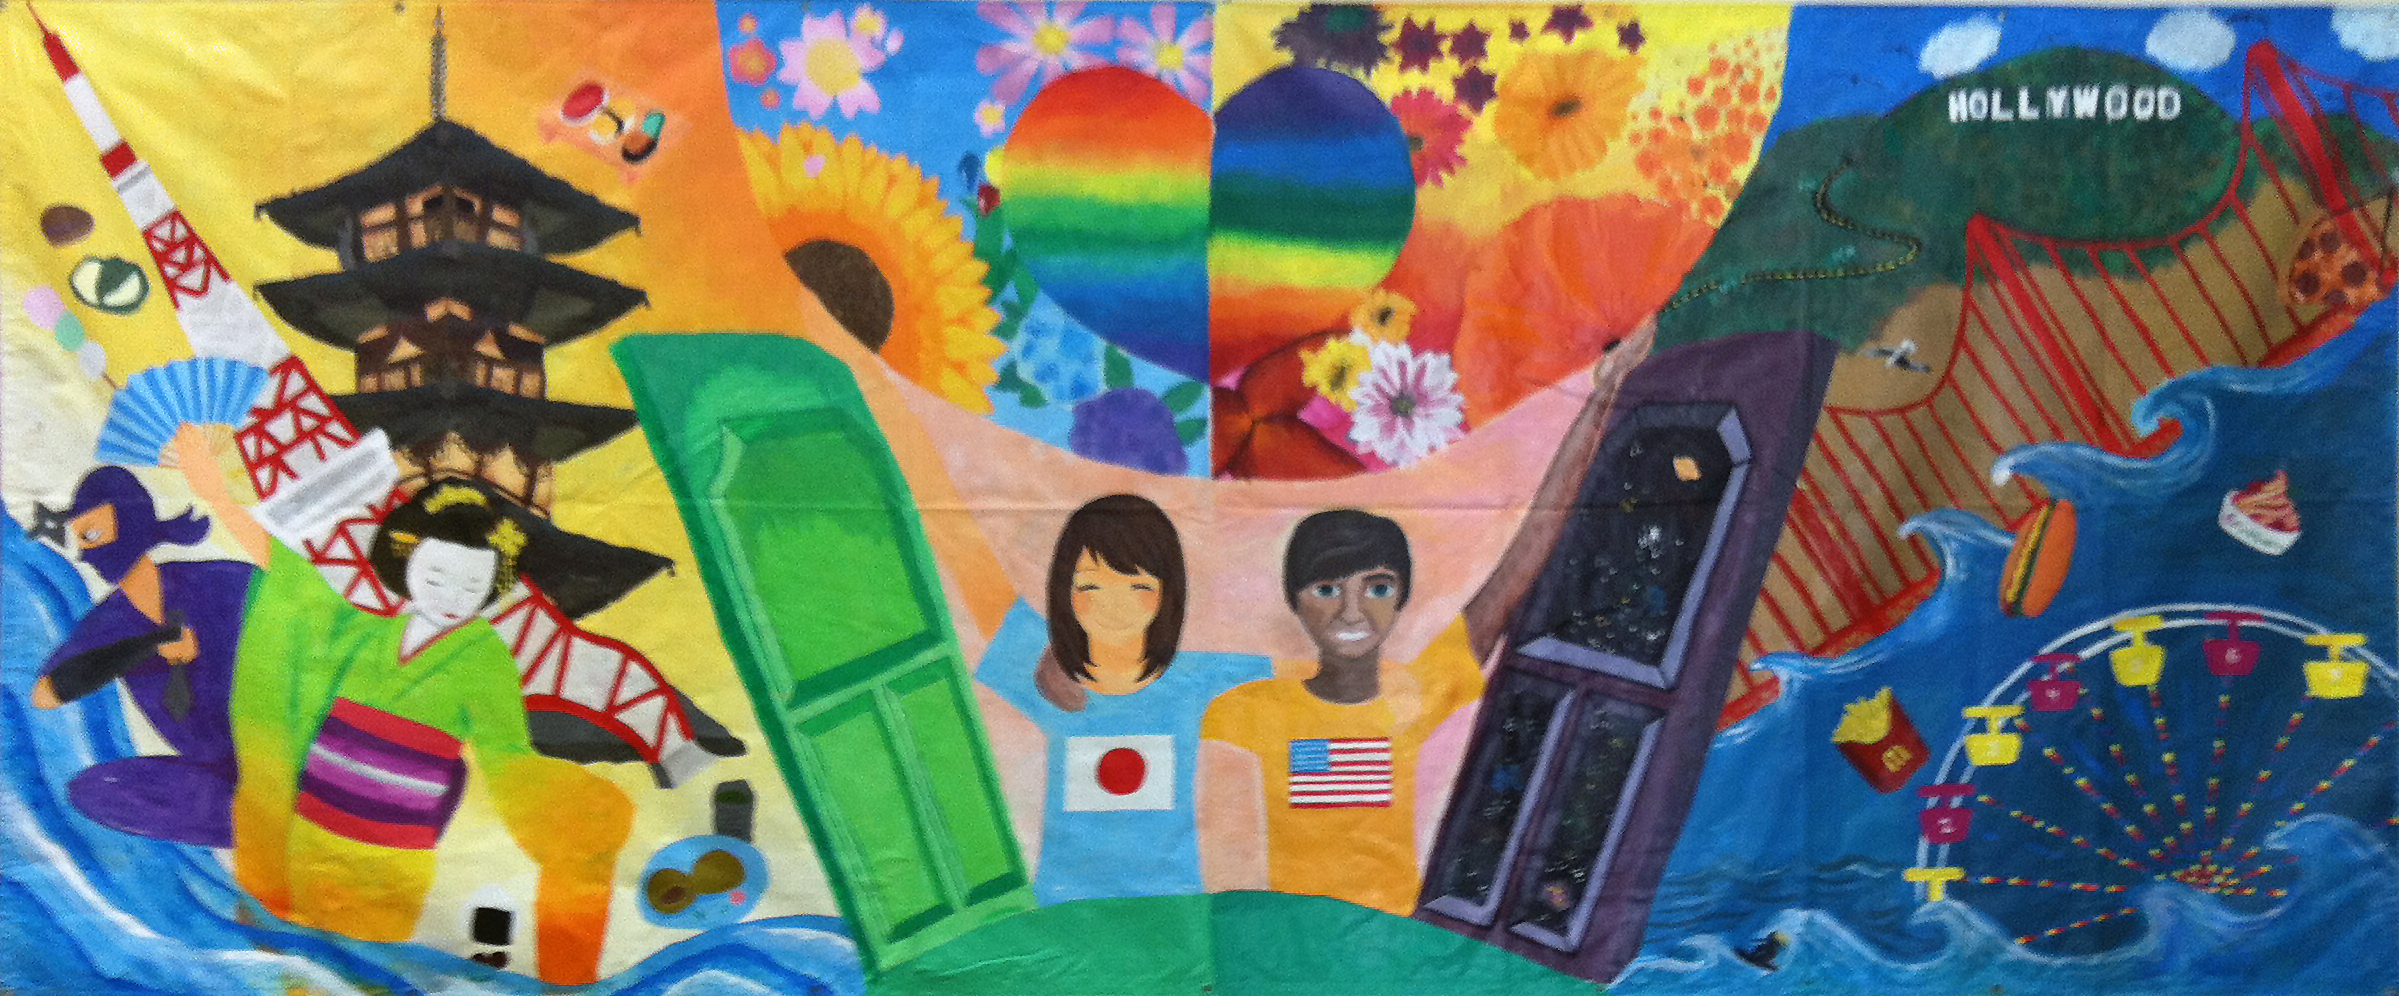 A mural painted by kids from JAMS and Japan that is being featured in an international art show to promote peace and understanding between cultures. (Photo courtesy  Jennifer Joyce)